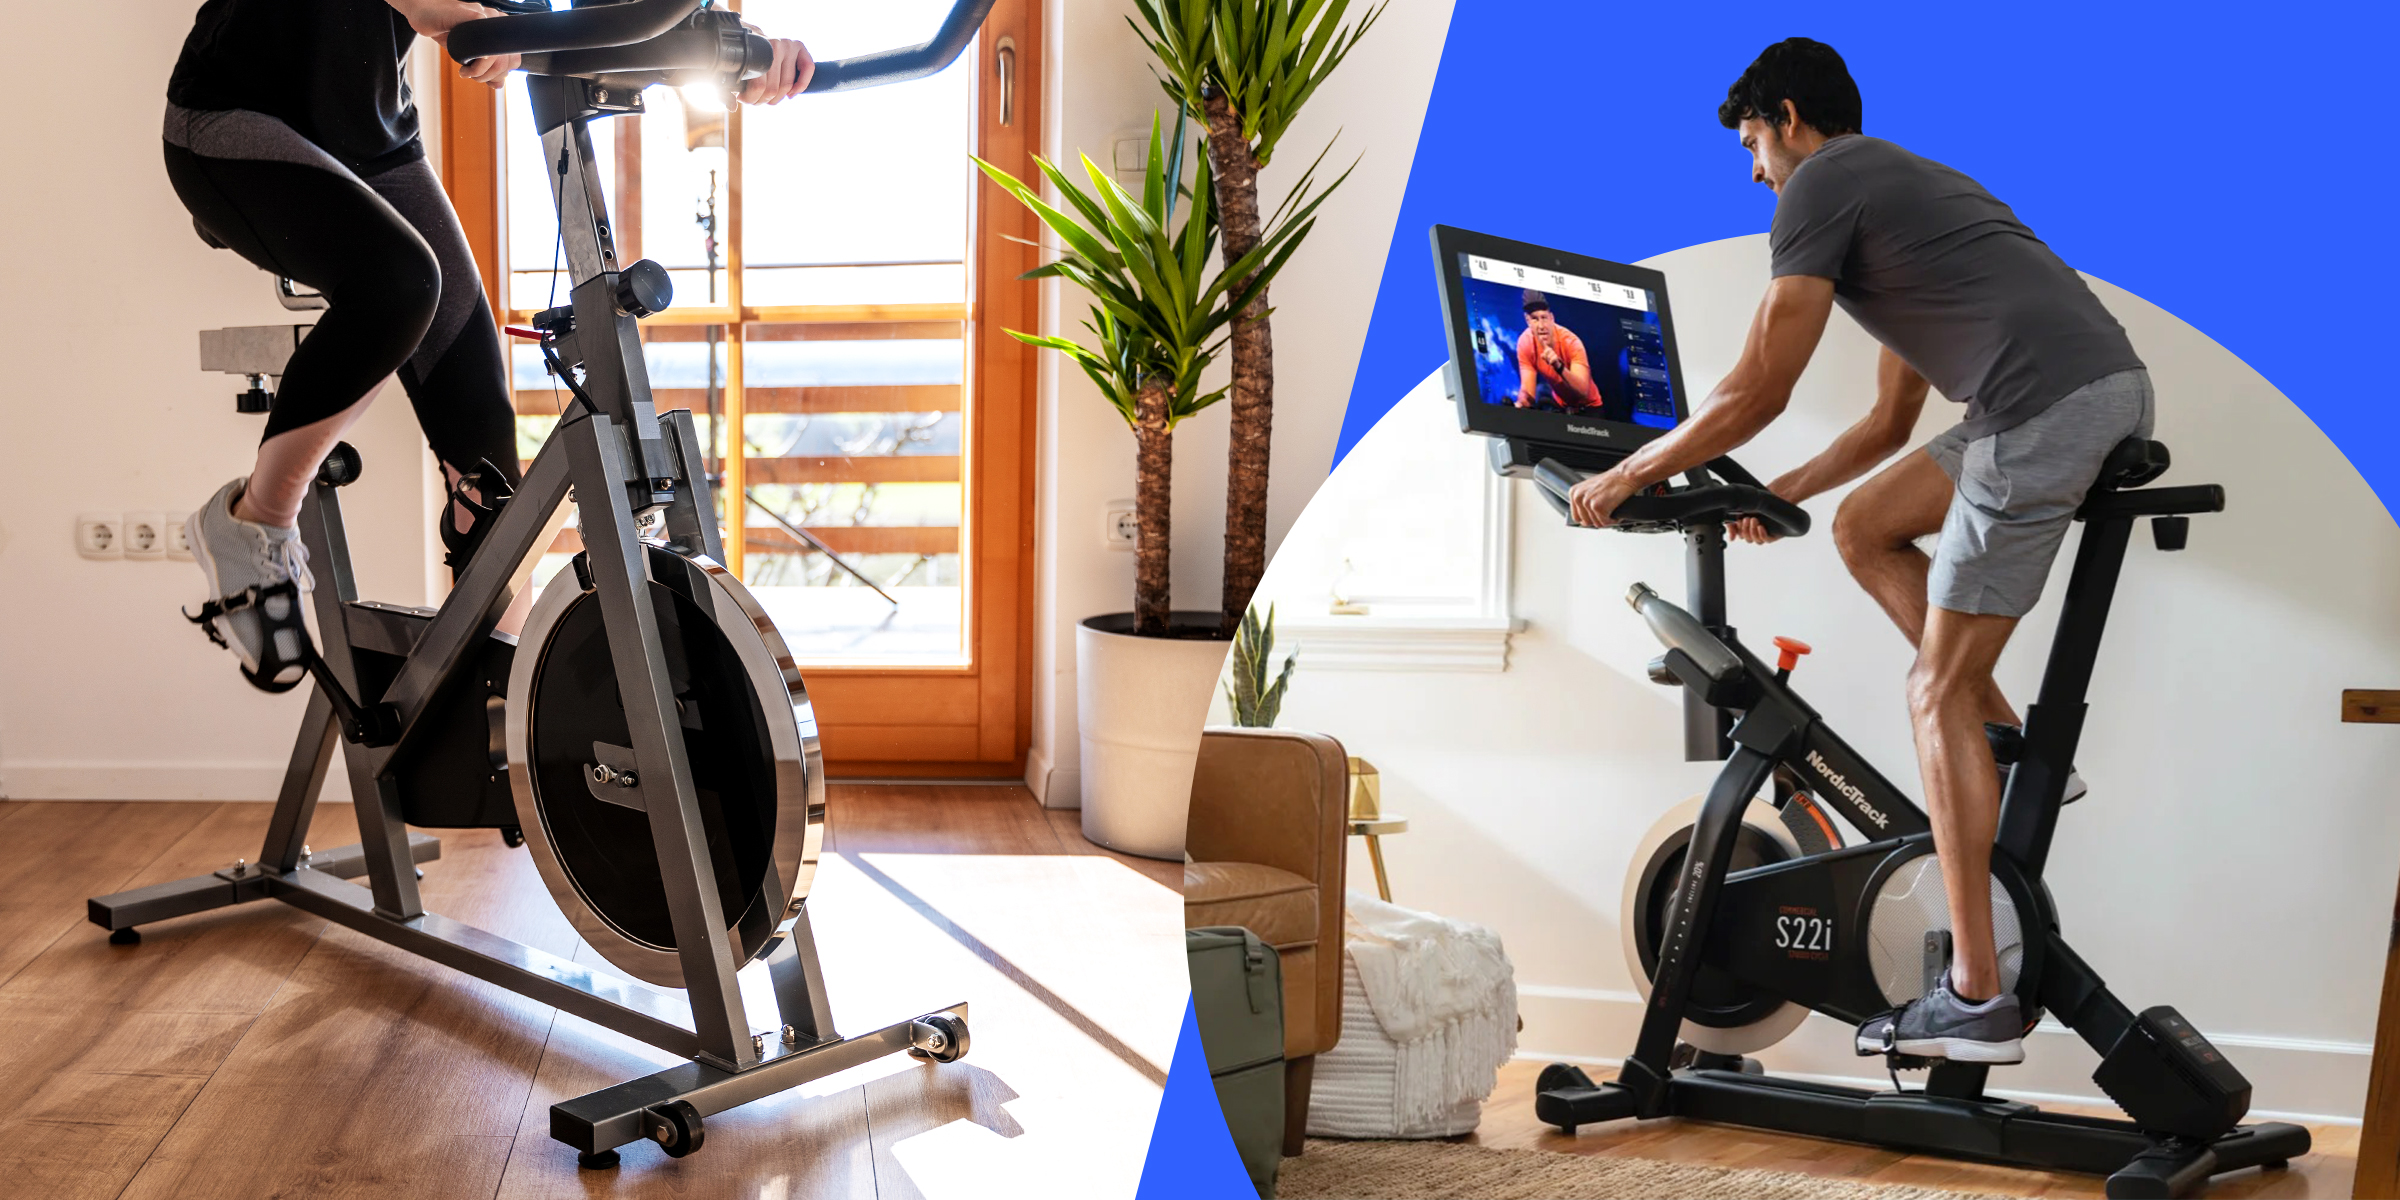 Best exercise bikes outside of Peloton, according to experts